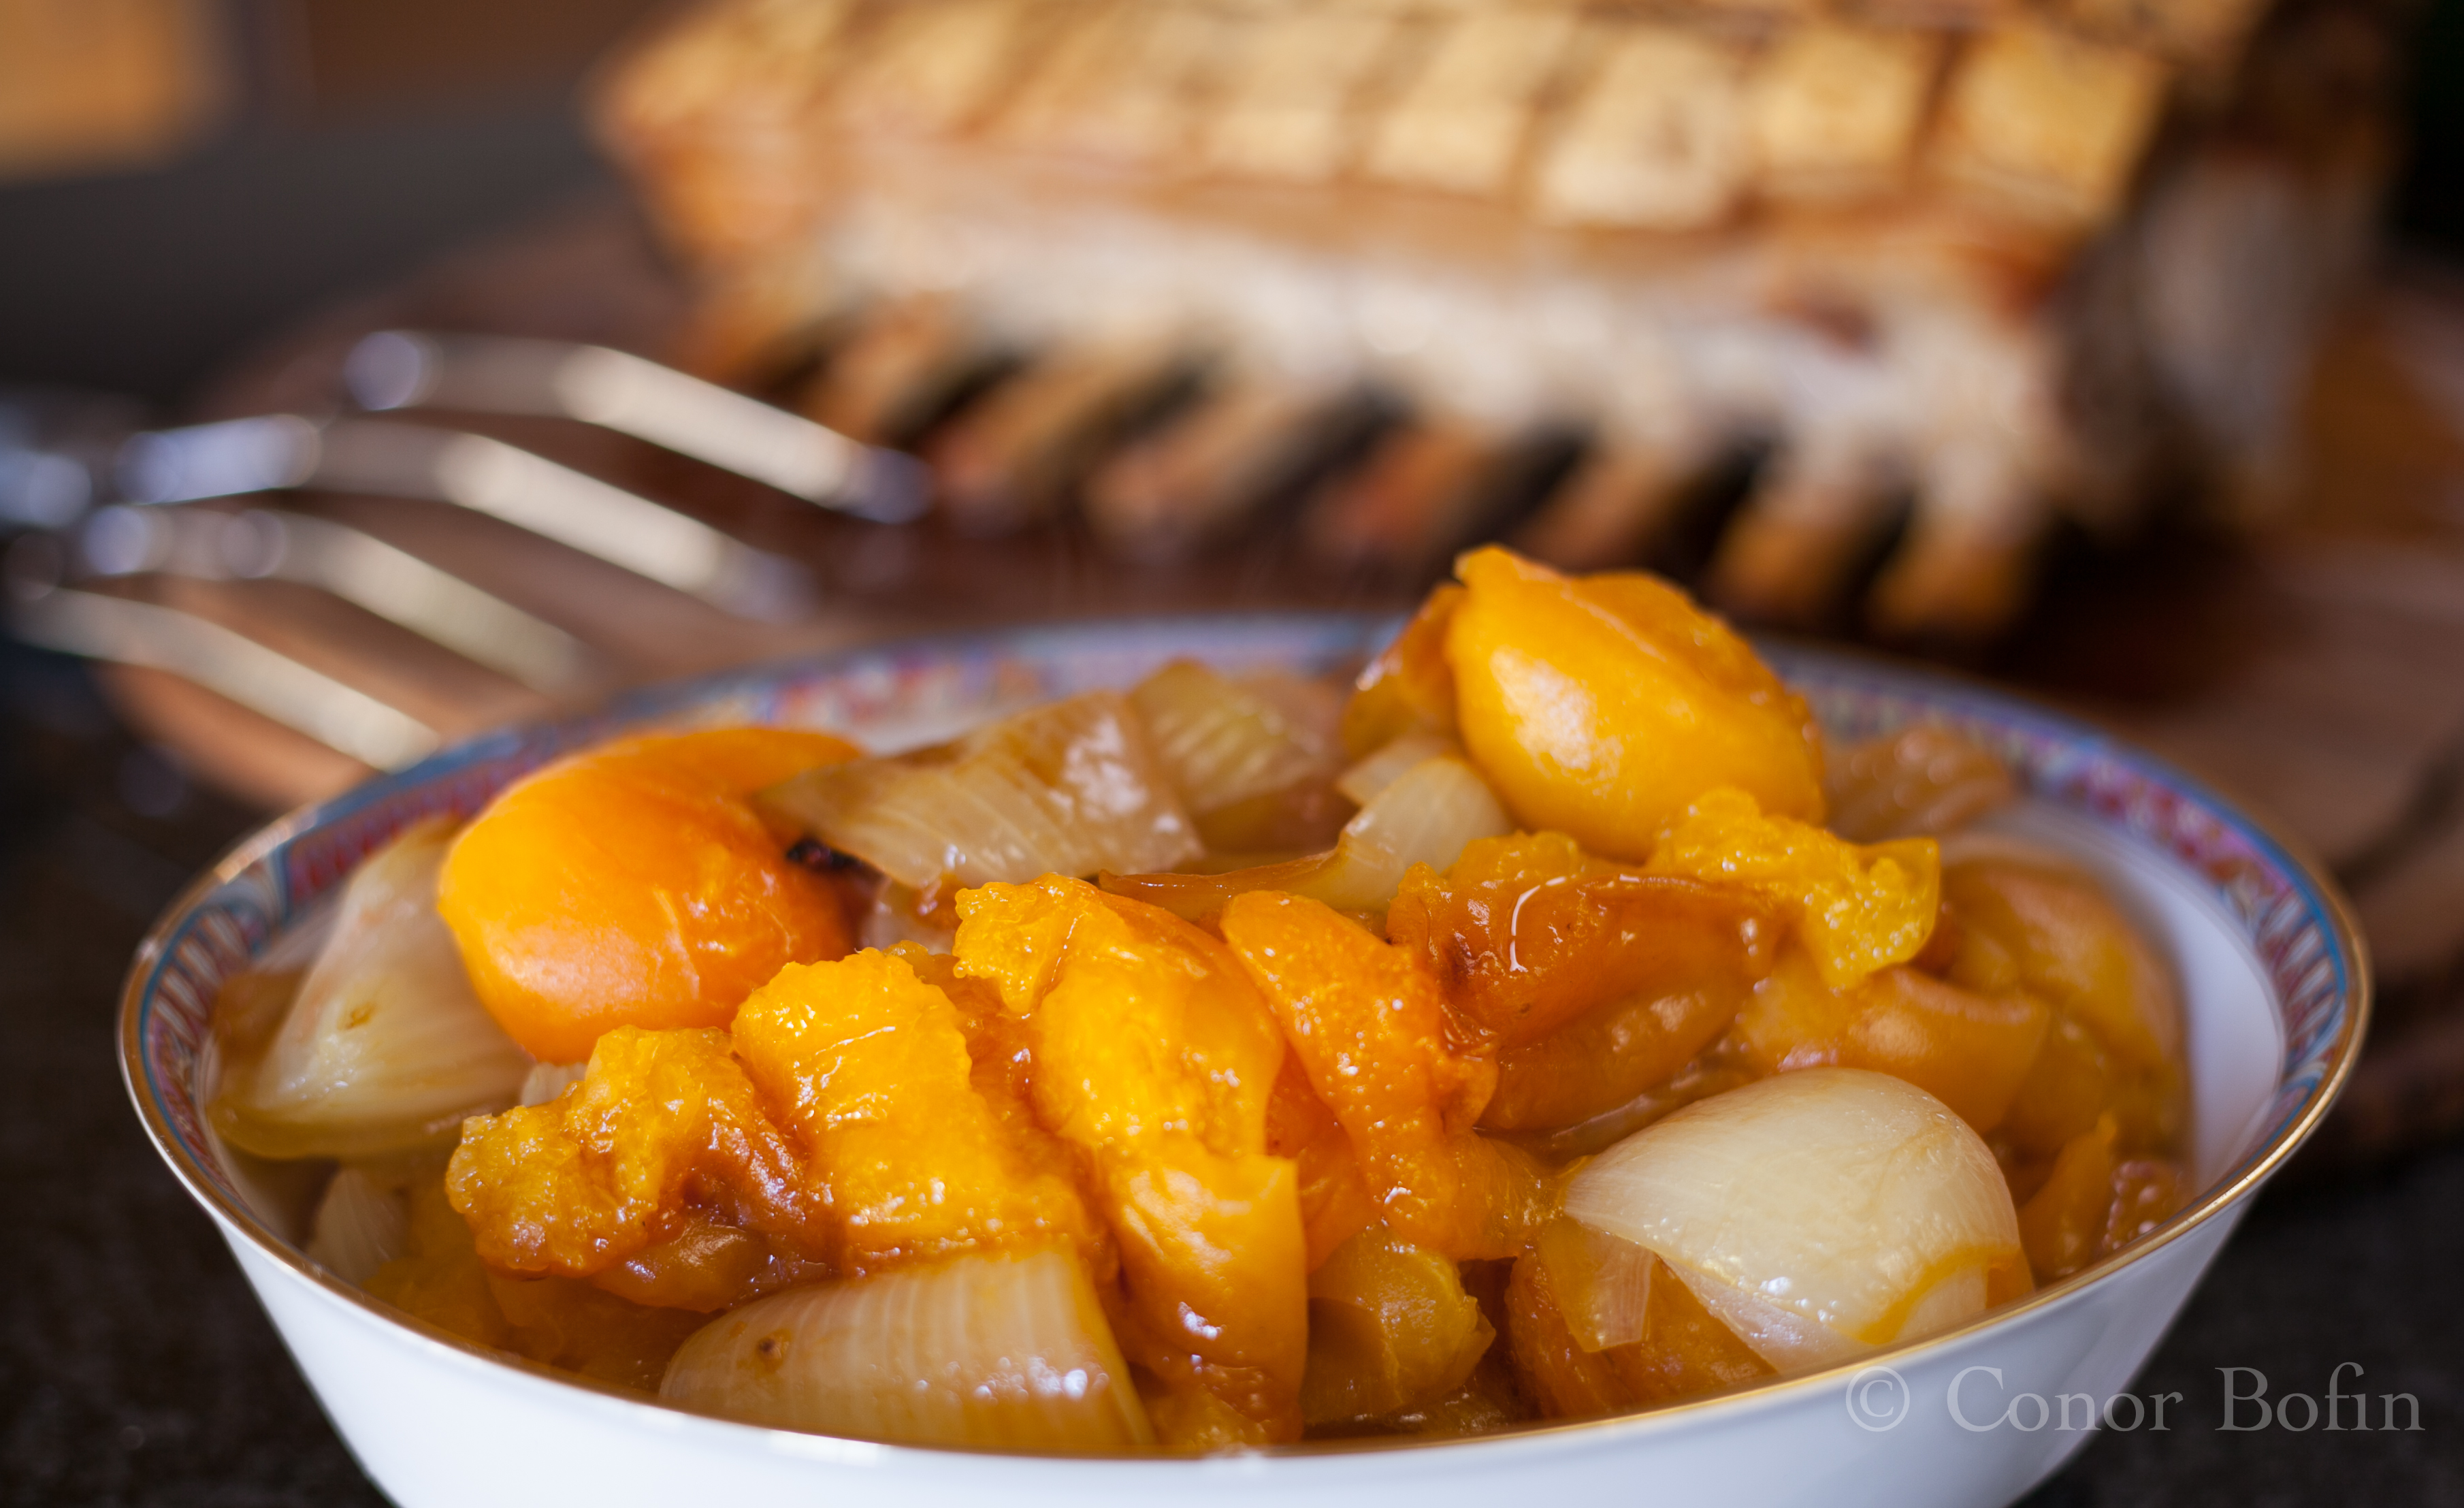 The pork fat combines with the carmelised onion and apricot to produce awesome flavours.